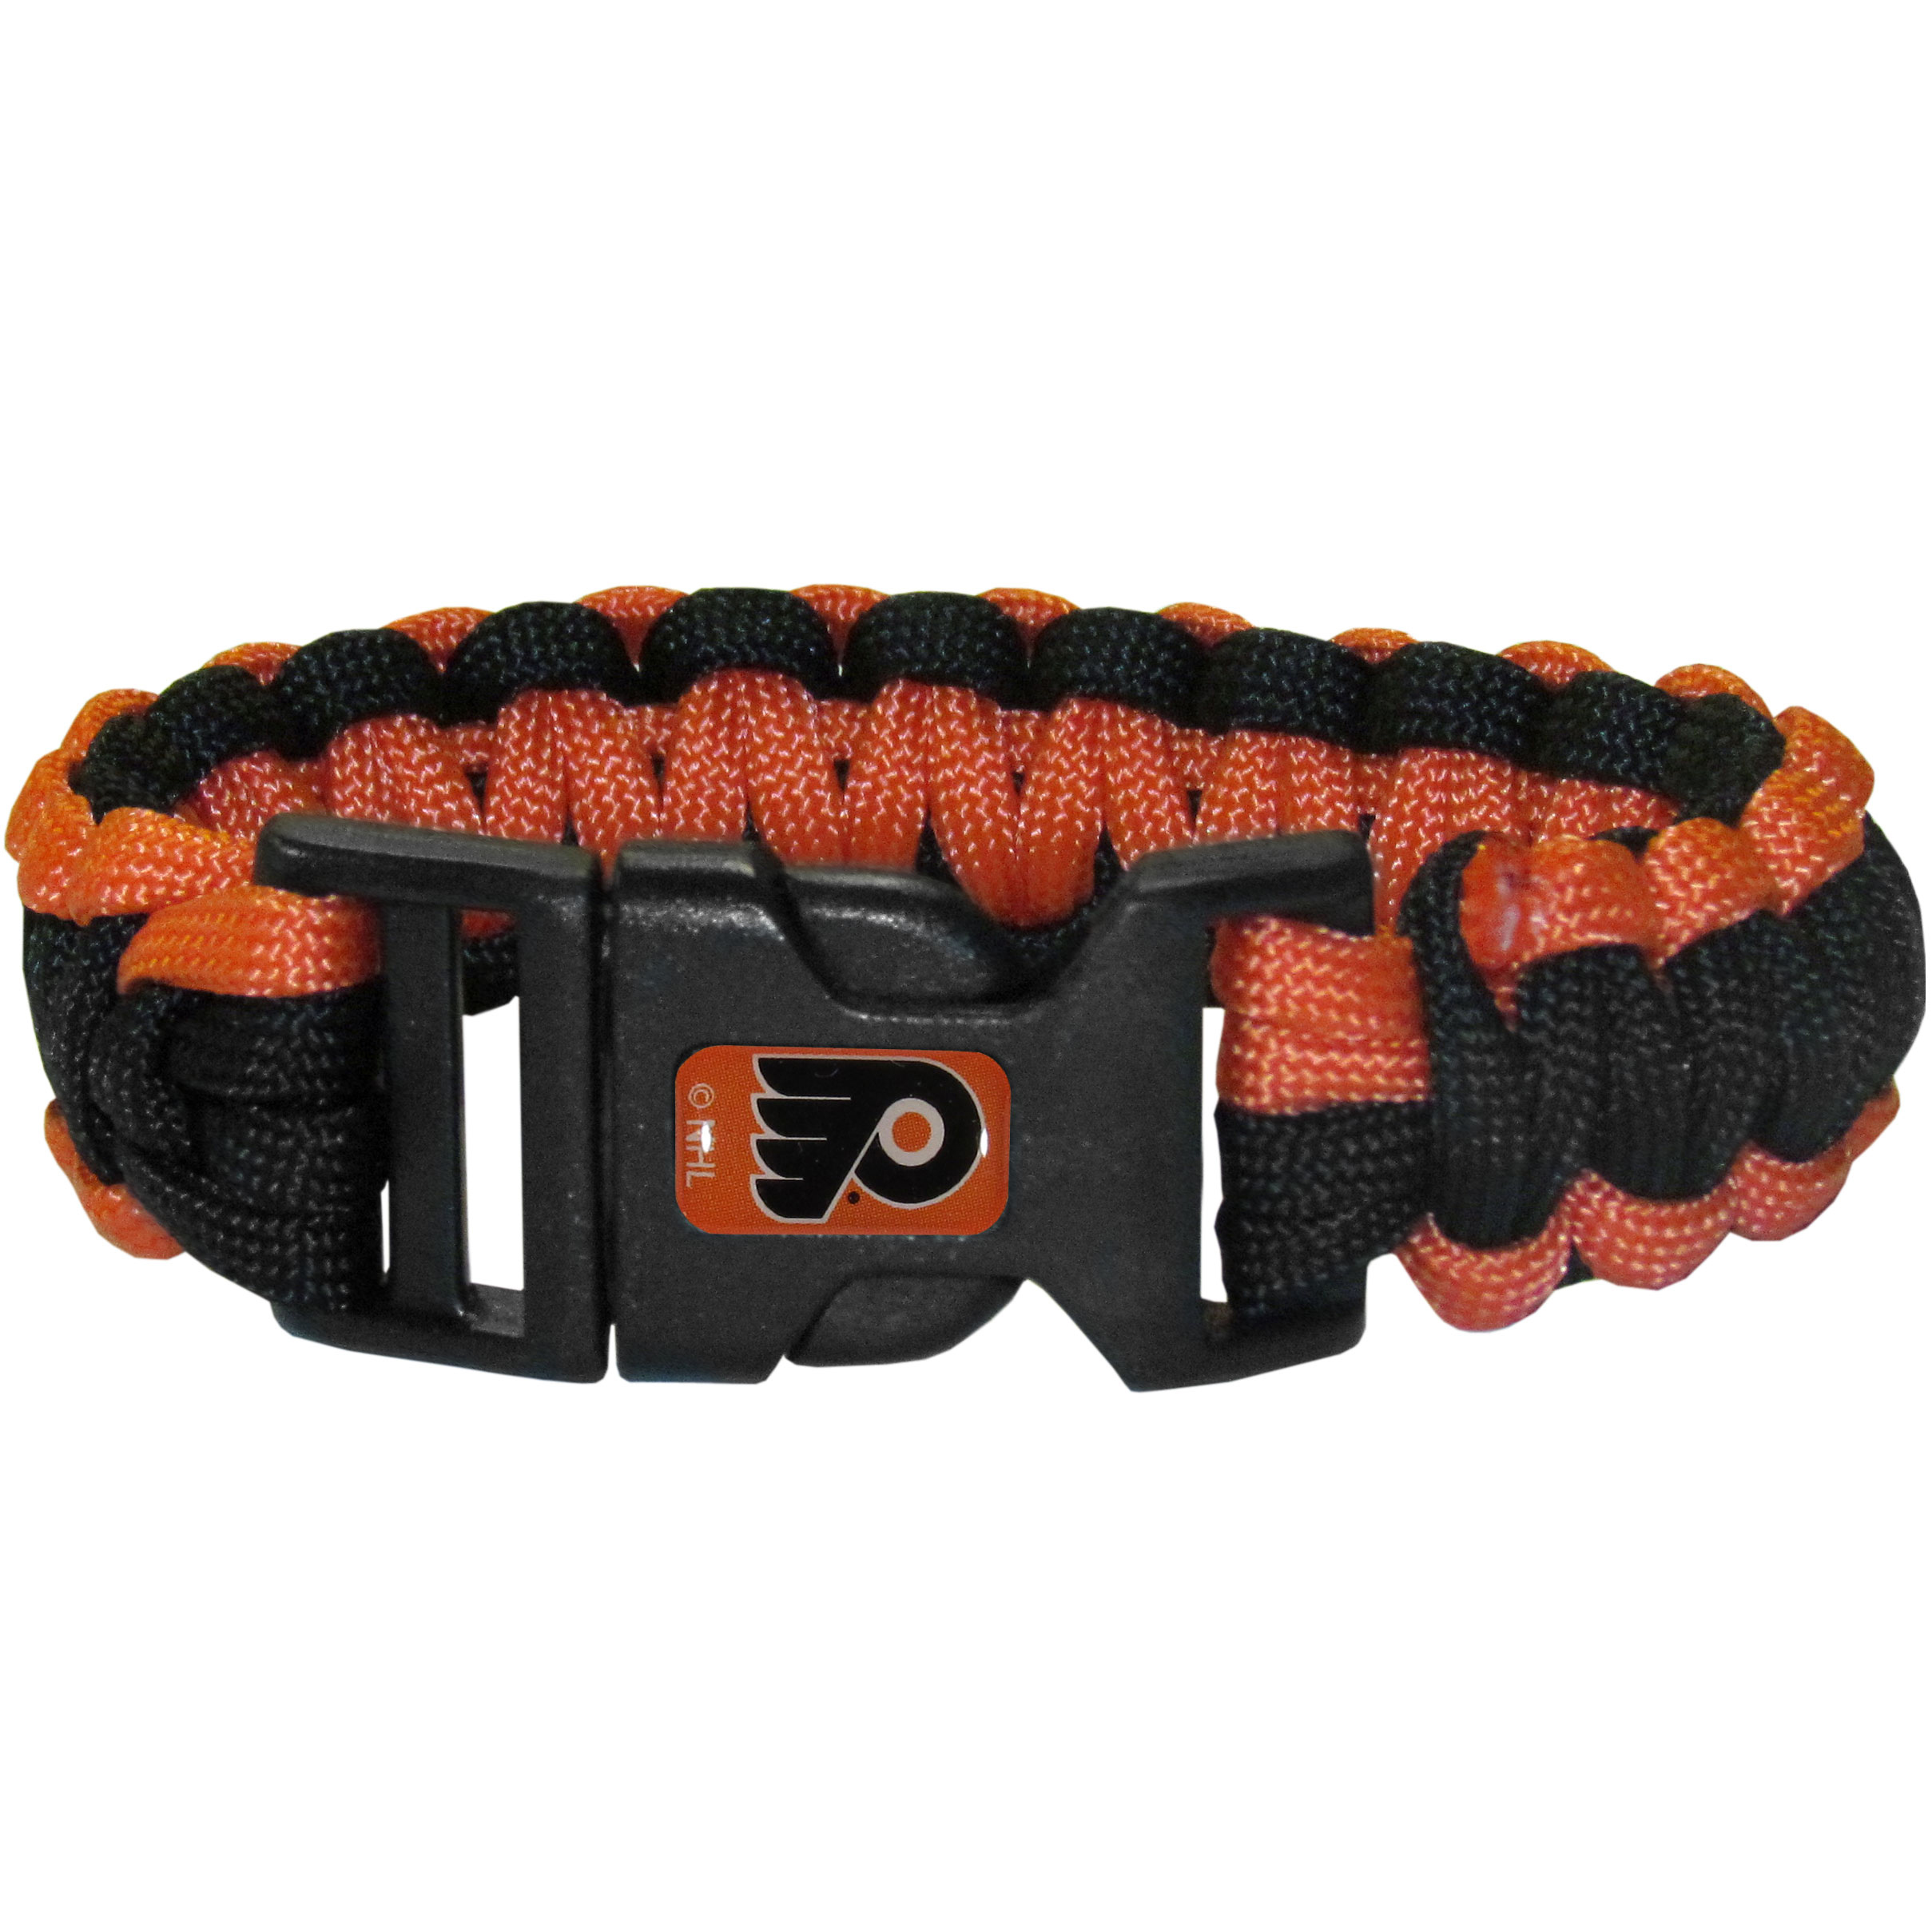 Philadelphia Flyers® Survivor Bracelet - Our functional and fashionable Philadelphia Flyers® survivor bracelets contain 2 individual 300lb test paracord rated cords that are each 5 feet long. The team colored cords can be pulled apart to be used in any number of emergencies and look great while worn. The bracelet features a team emblem on the clasp.